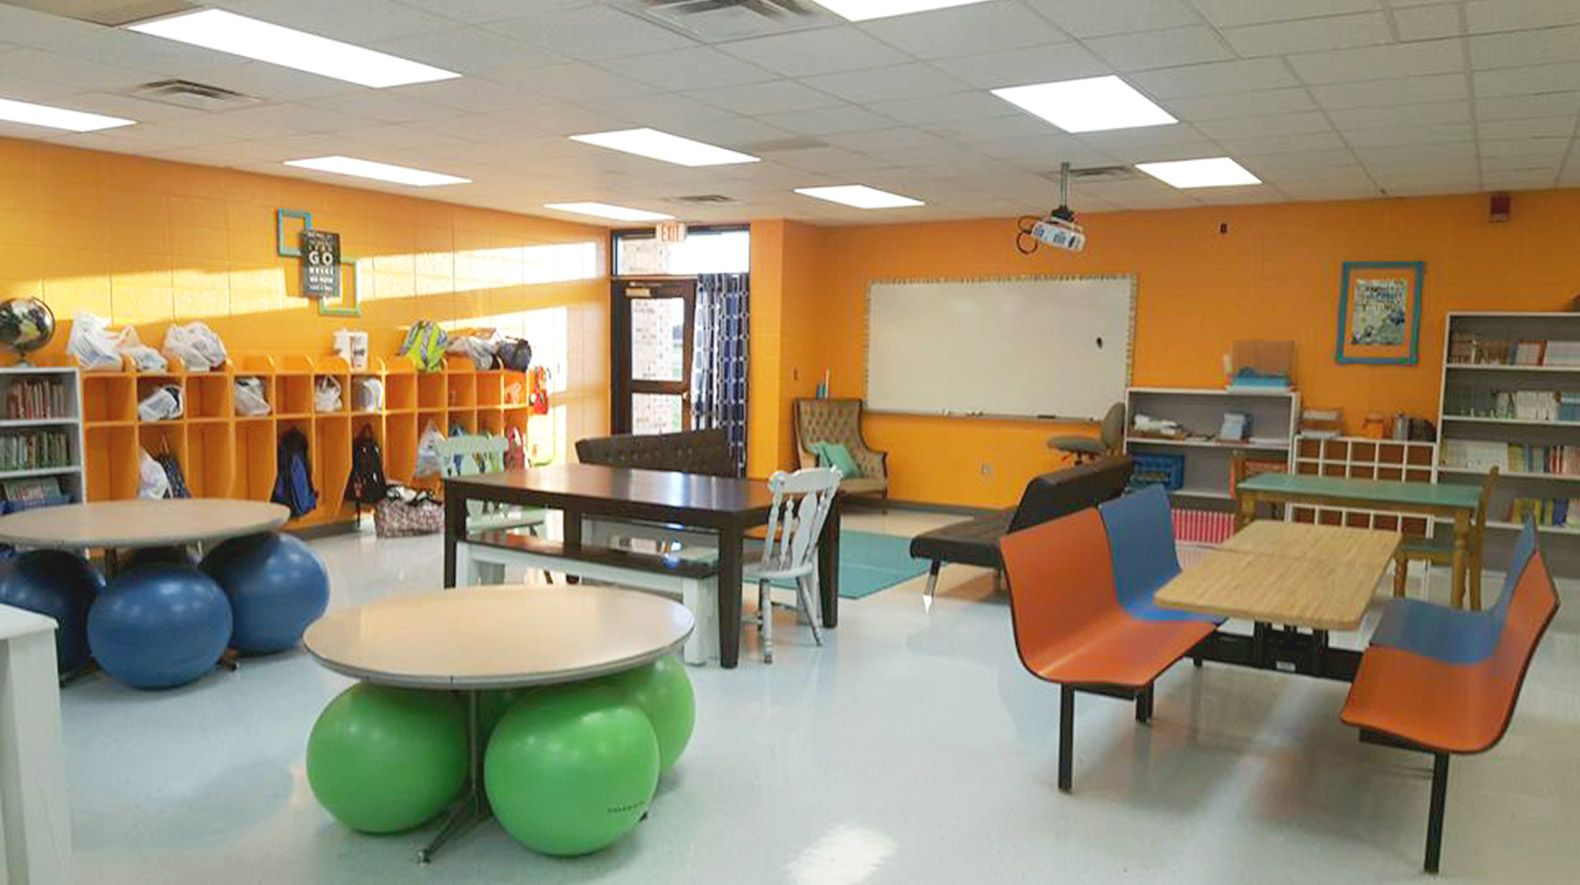 Sutherland, Curts, and Maziarka incorporated a range of tables and seating options to make their classroom comfortable. The huge space—originally three and a half separate classrooms—has a number of distinct zones for 60-plus students.